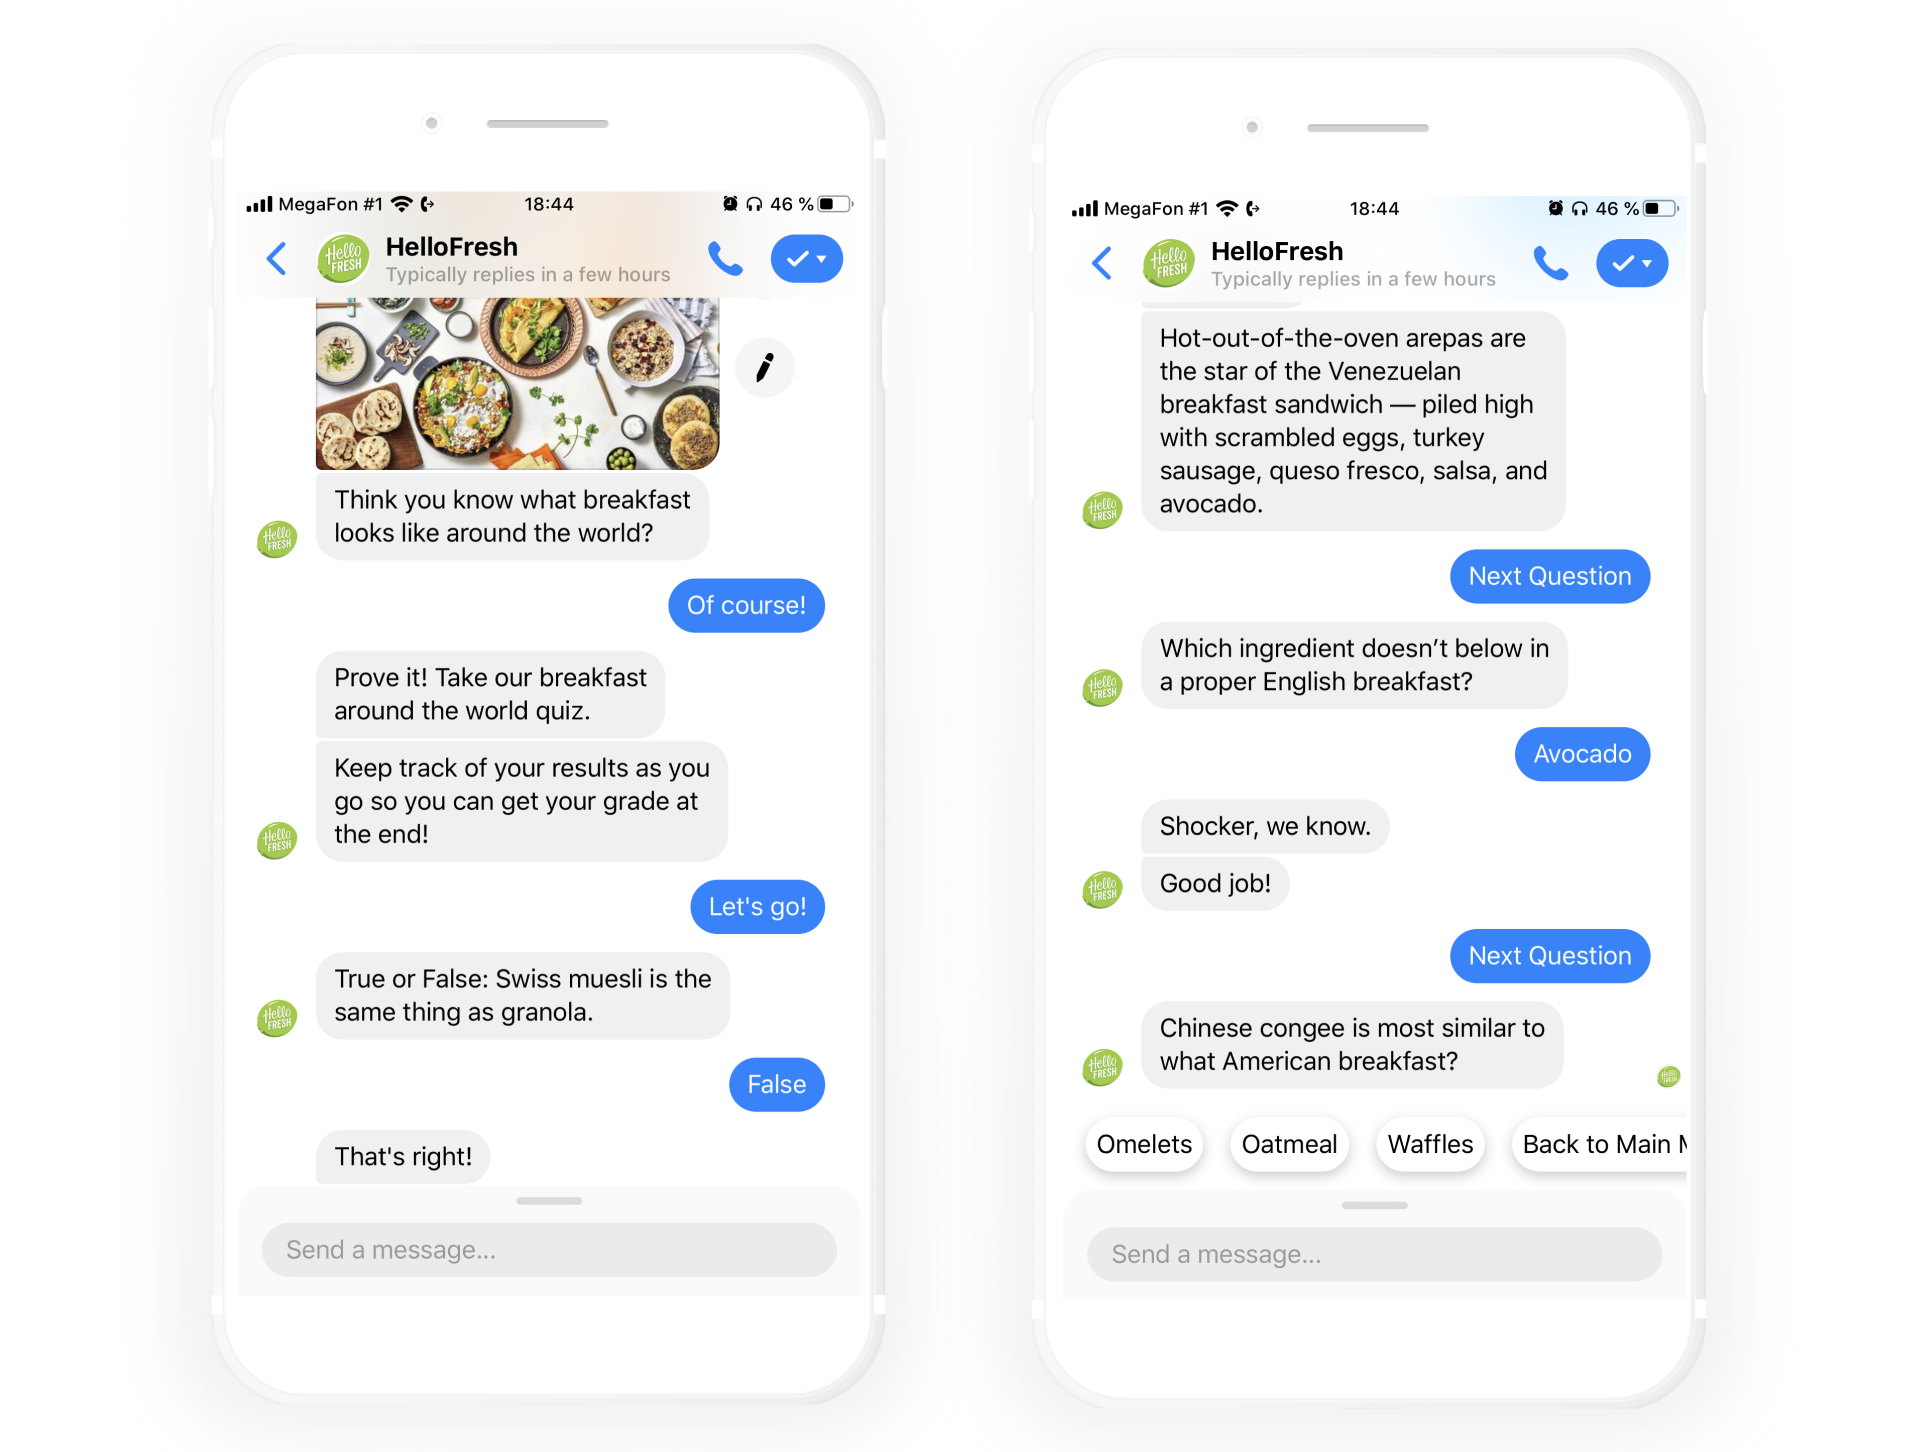 A fun quiz carried out by HelloFresh's chatbot